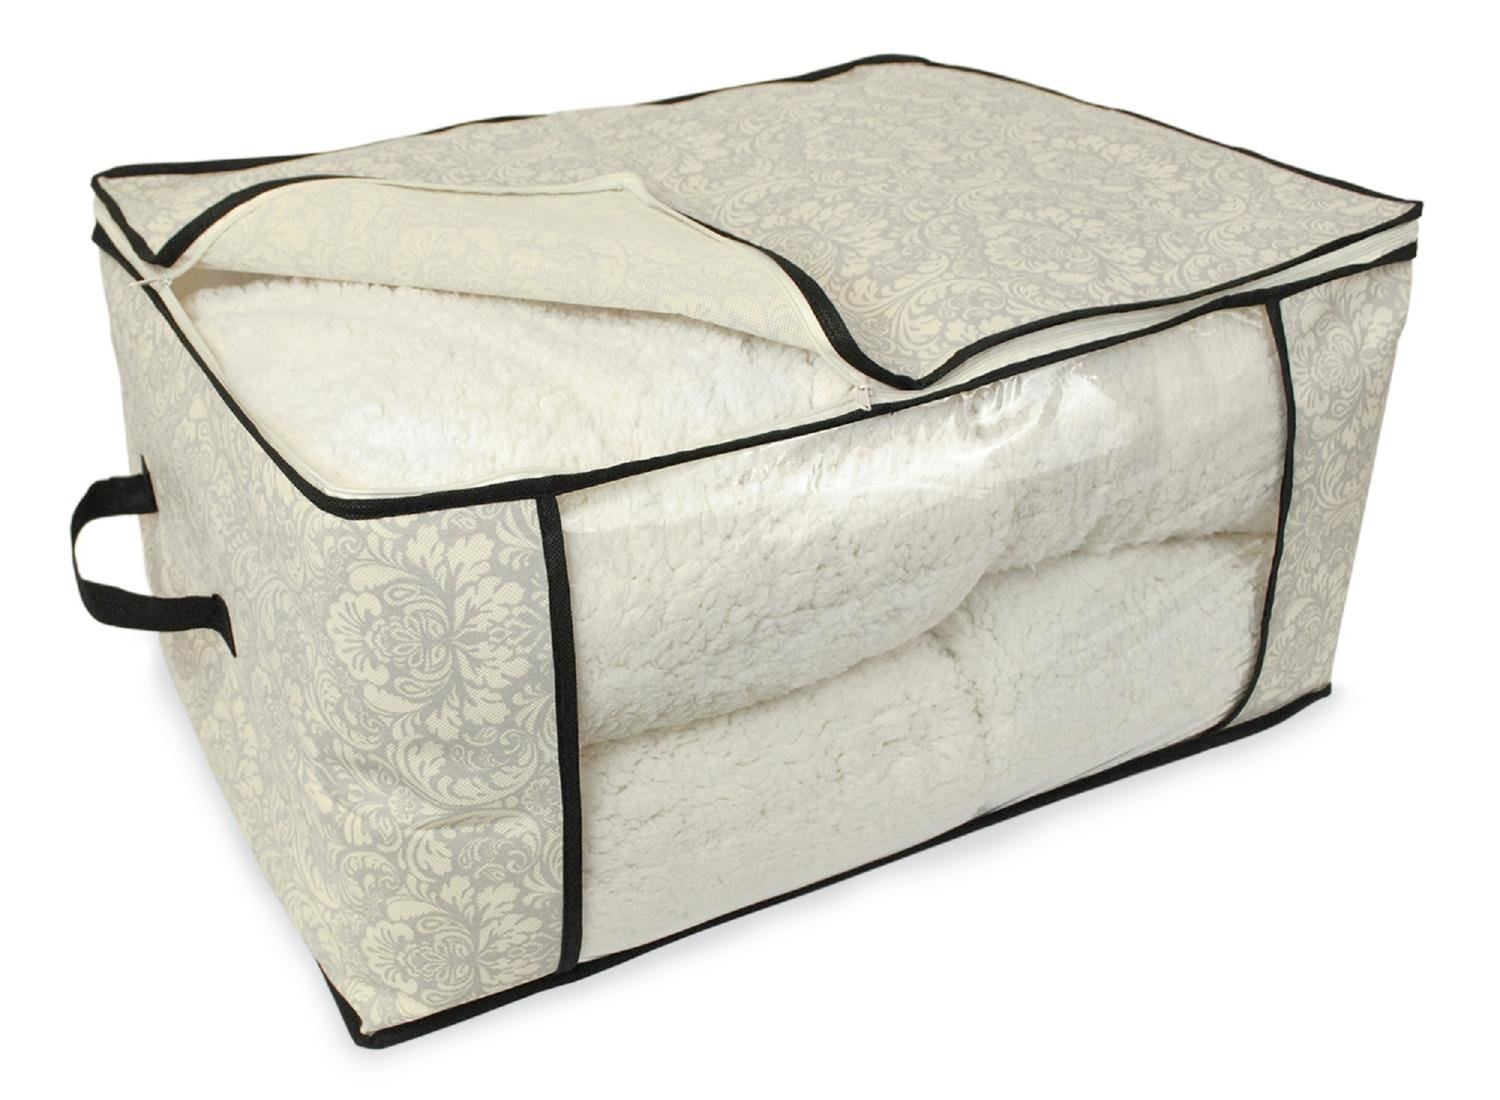 CC Home Furnishings Set of 2 Gray Damask Patterned Soft Storage Bins with Zipper Closure 24''